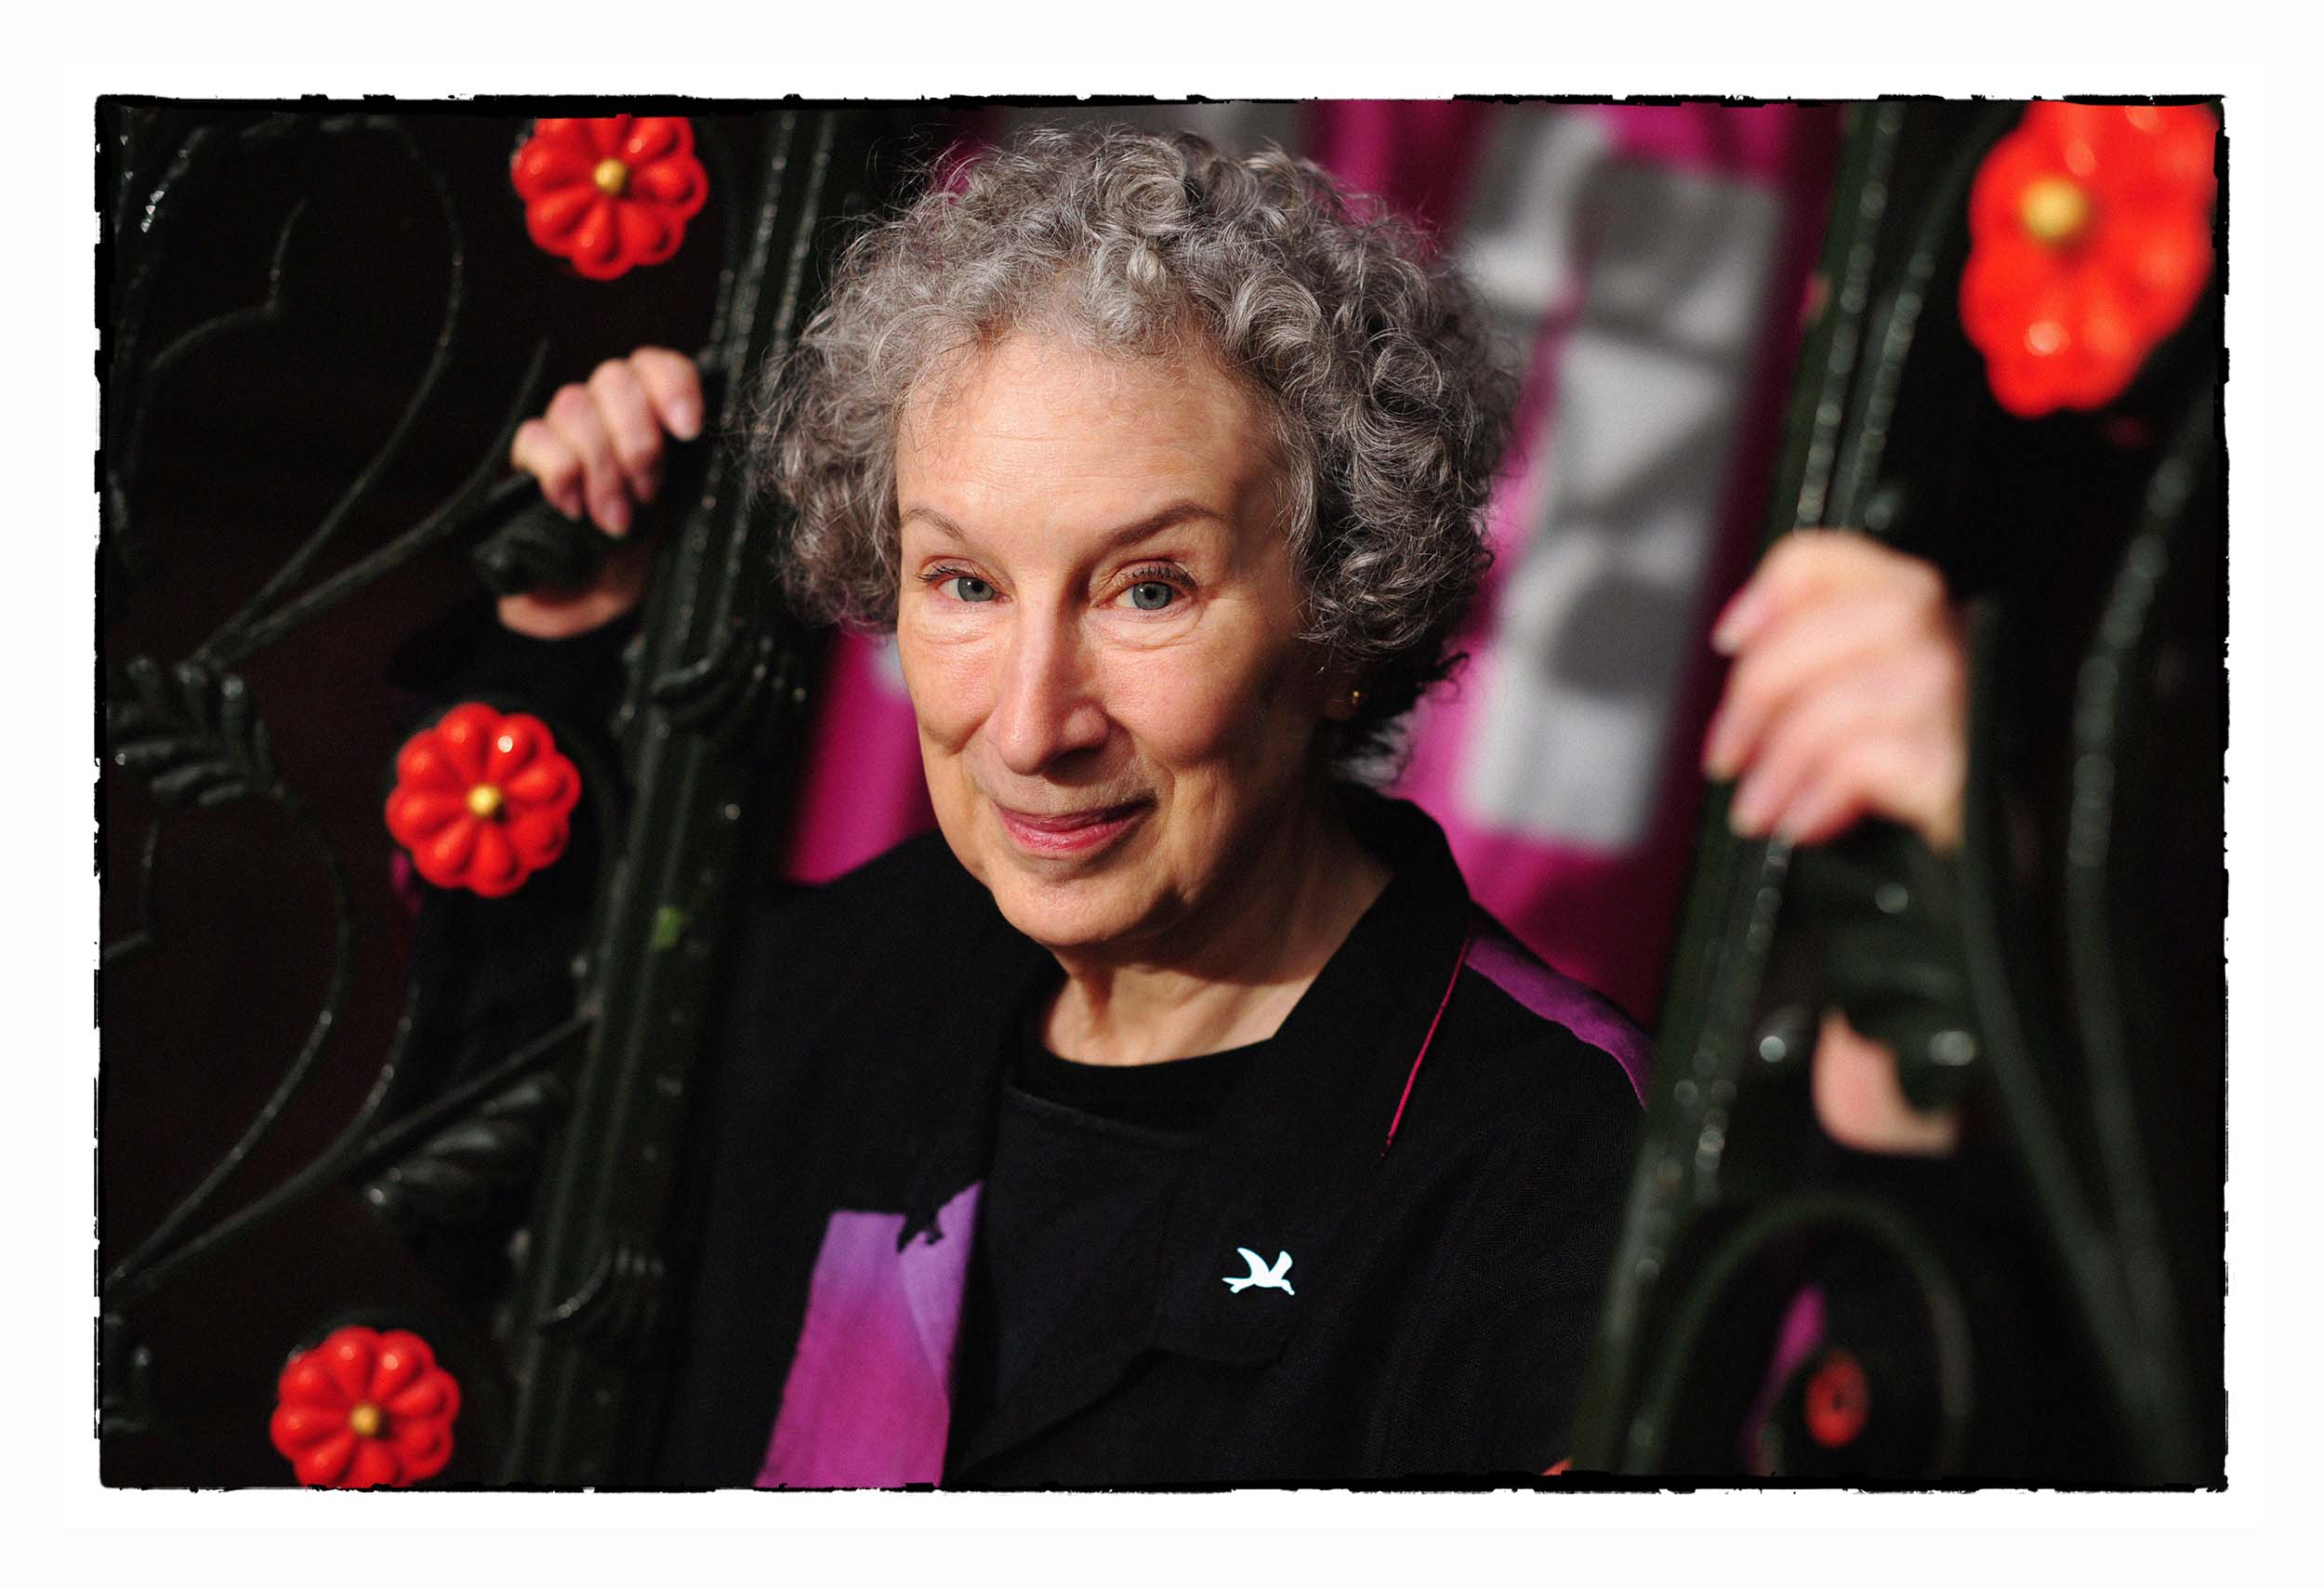 Booker Prize Winner 2019 Author Margaret Atwood The Testaments Handmaids Tale Photography by Jon Parker Lee